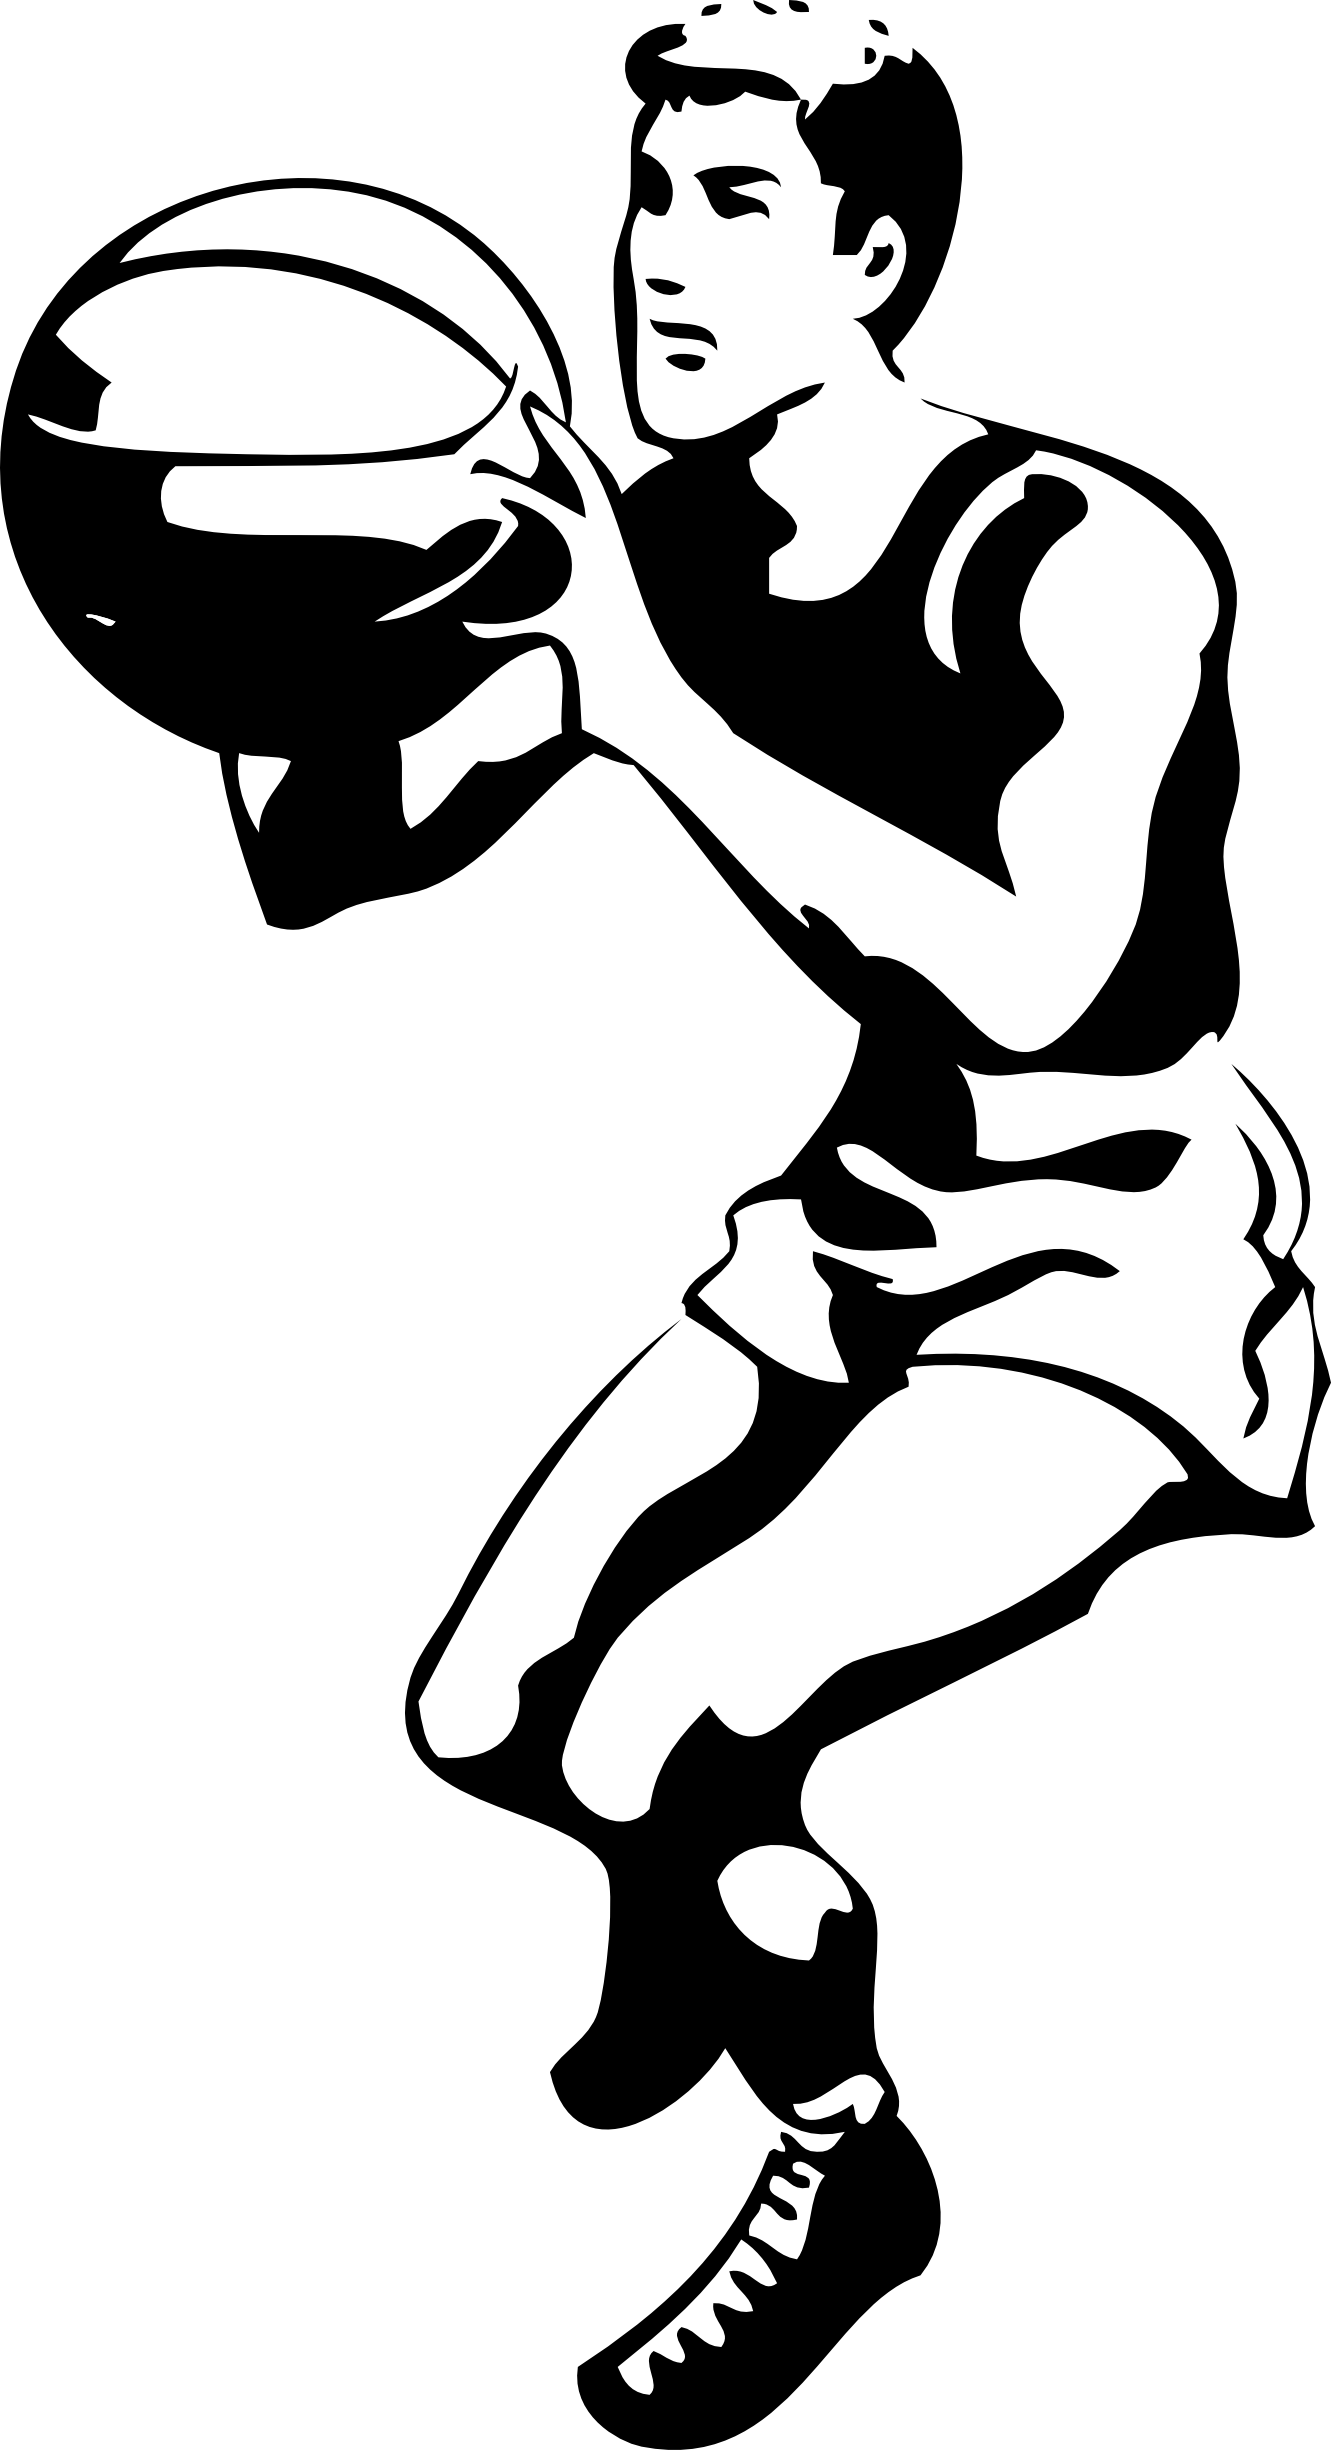 Panthers basketball clipart black and white download Basketball Player Clipart Black And White | Clipart Panda - Free ... black and white download